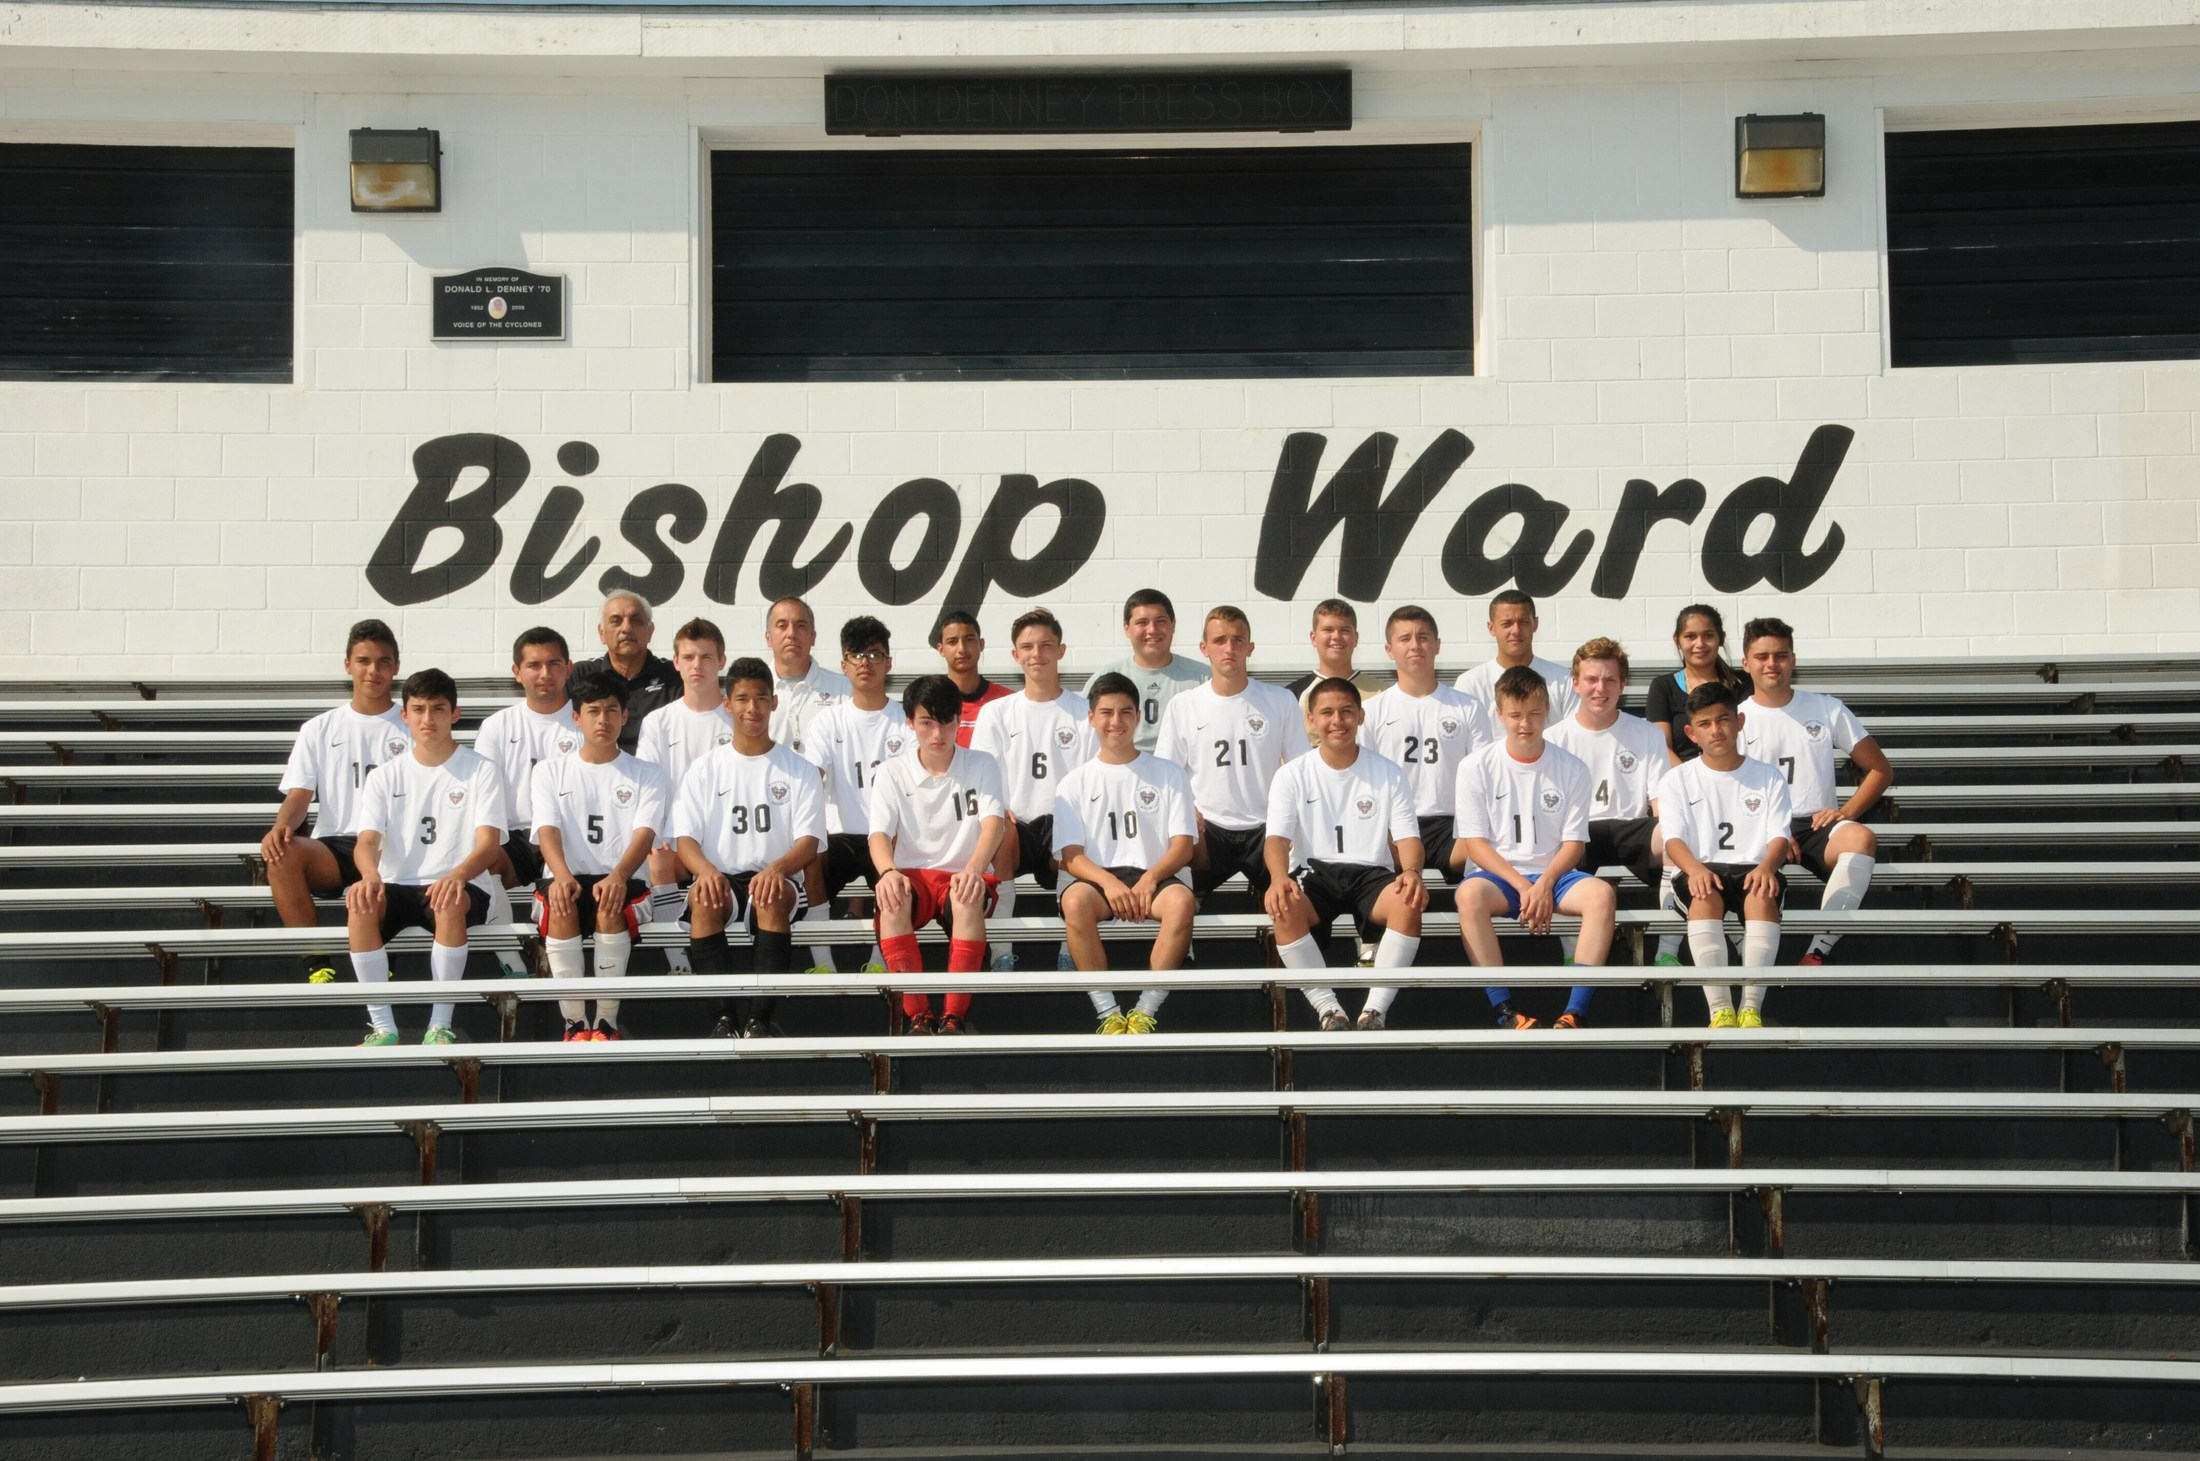 2015 Boys soccer team photo